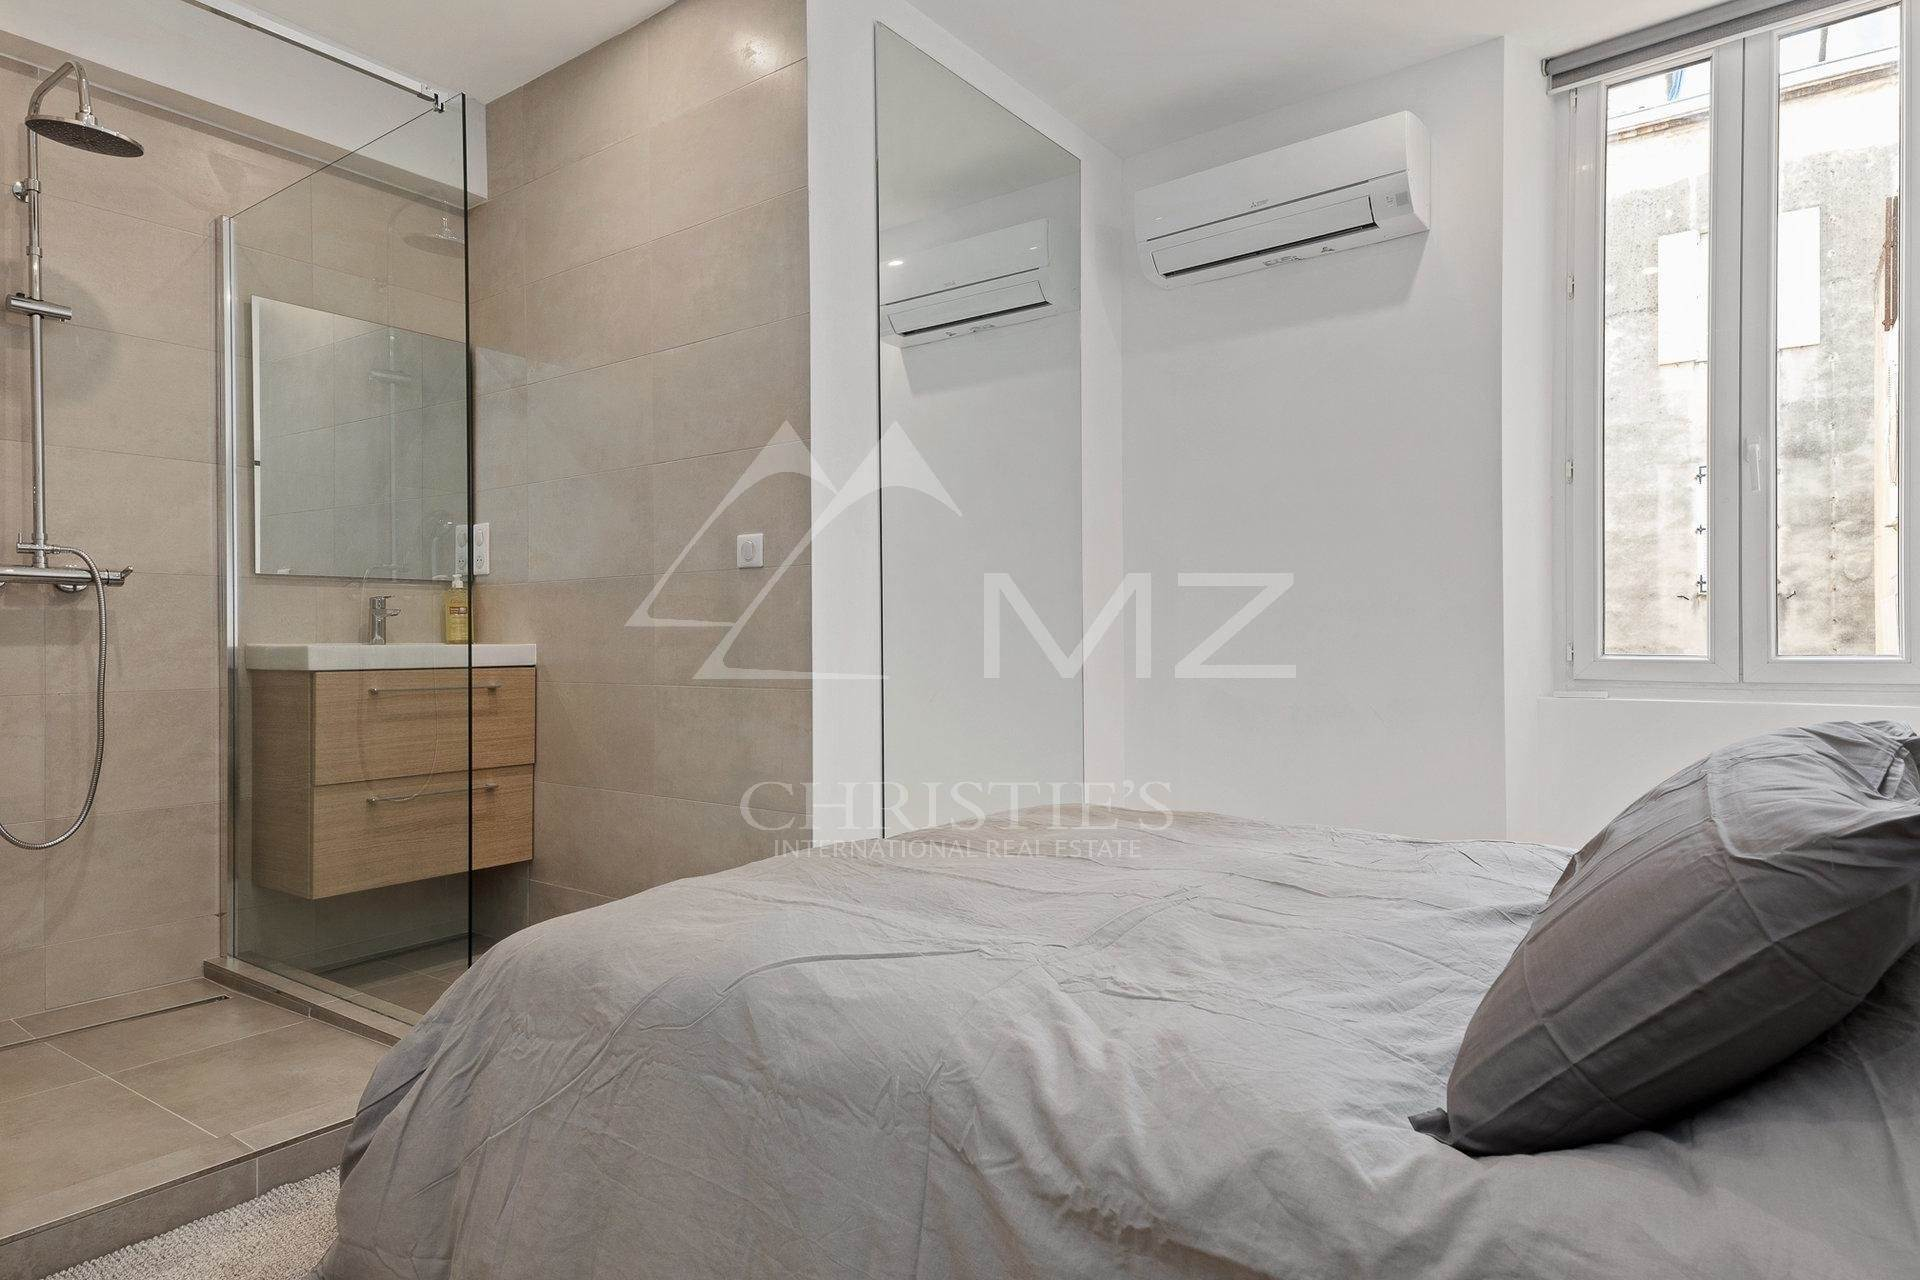 6. 公寓 為 出售 在 Cannes Center - Beautiful completely renovated apartment Cannes, 海濱阿爾卑斯省,06400 法國